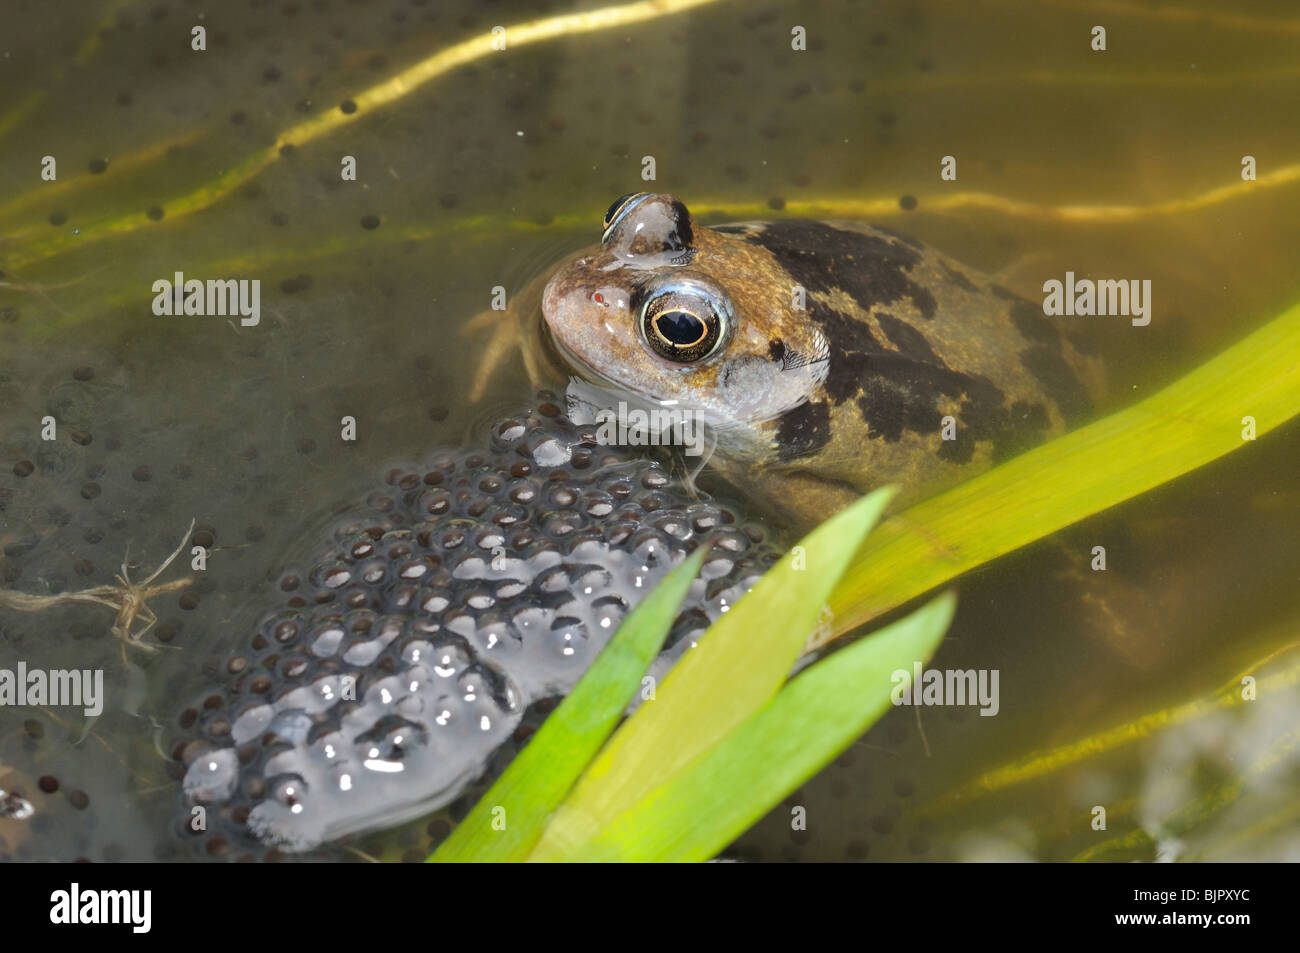 Common frog in pond - Stock Image